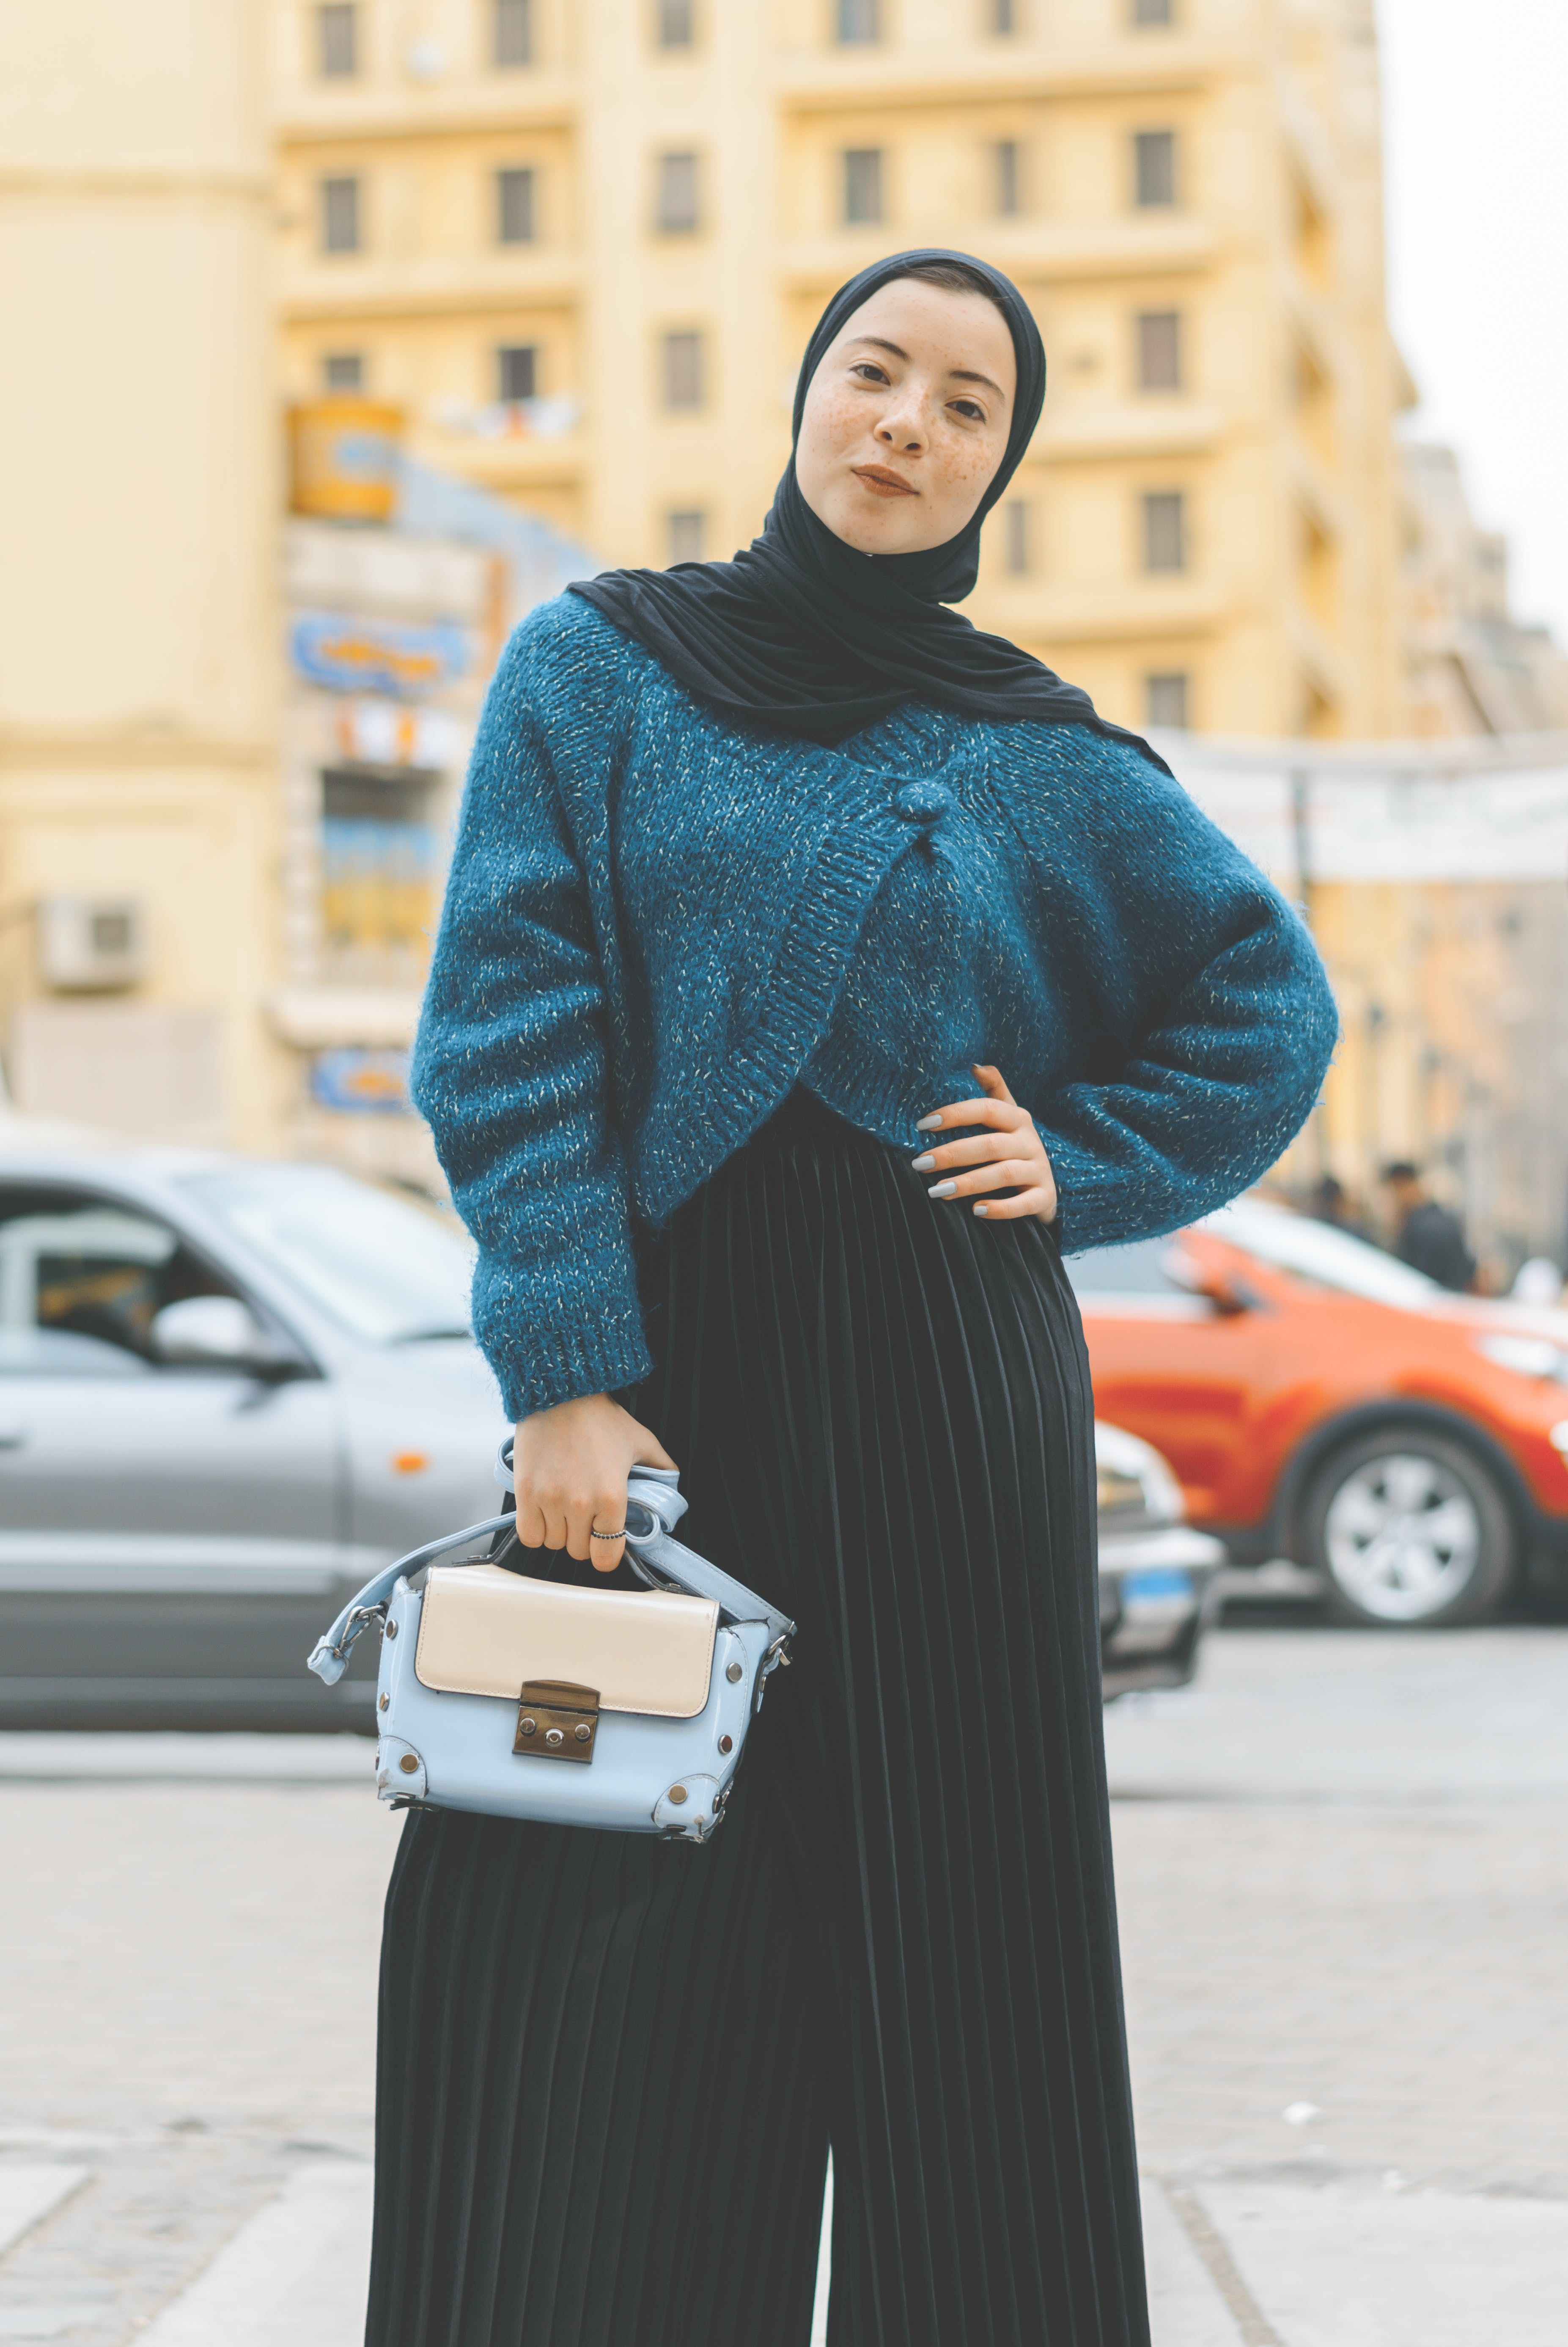 Woman Wears Blue and Black Sweater With Pants